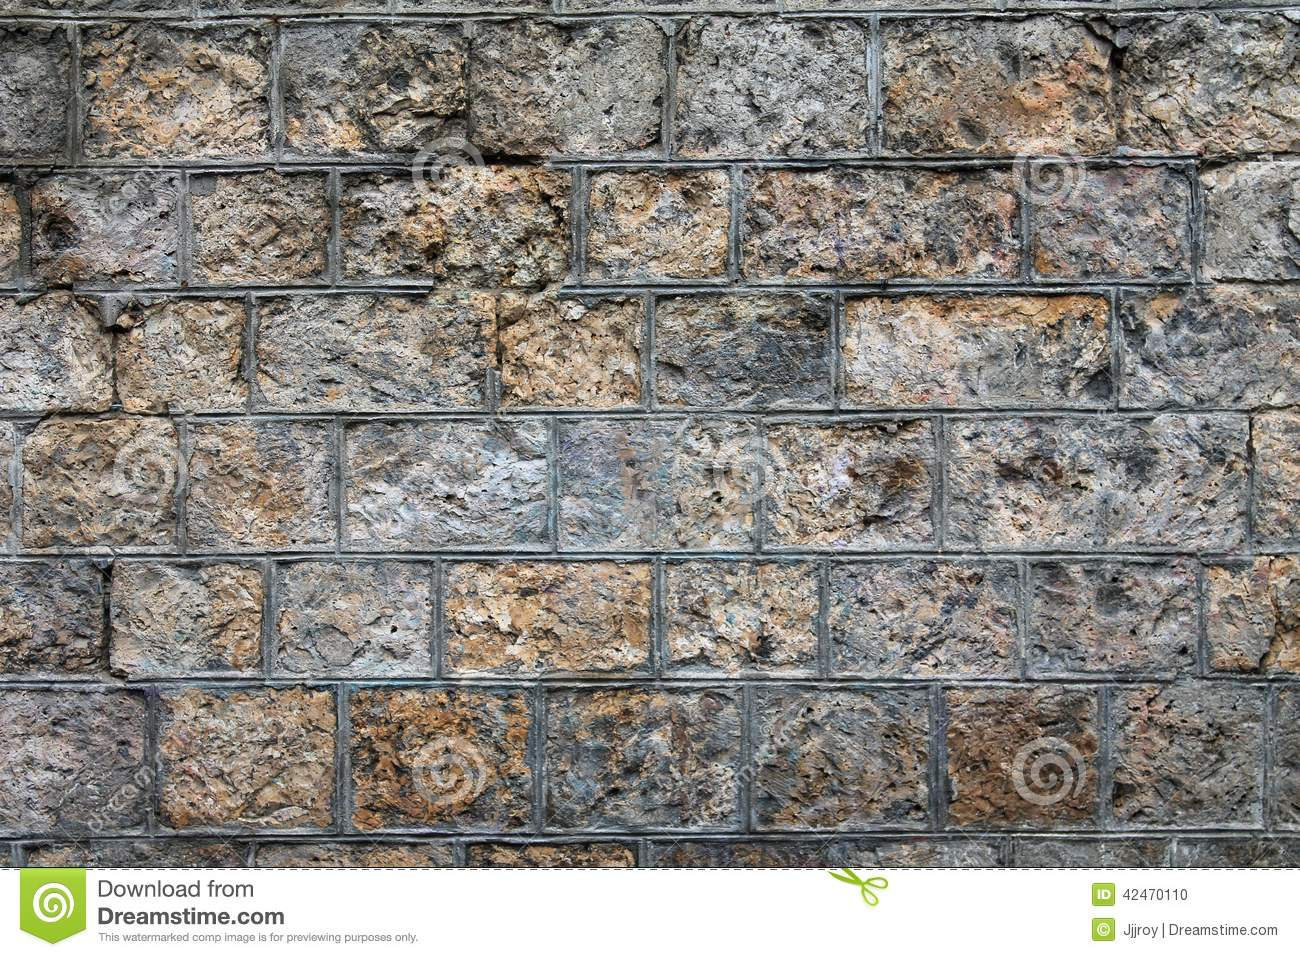 Rough Granite Block : Rough stone wall background stock photo image